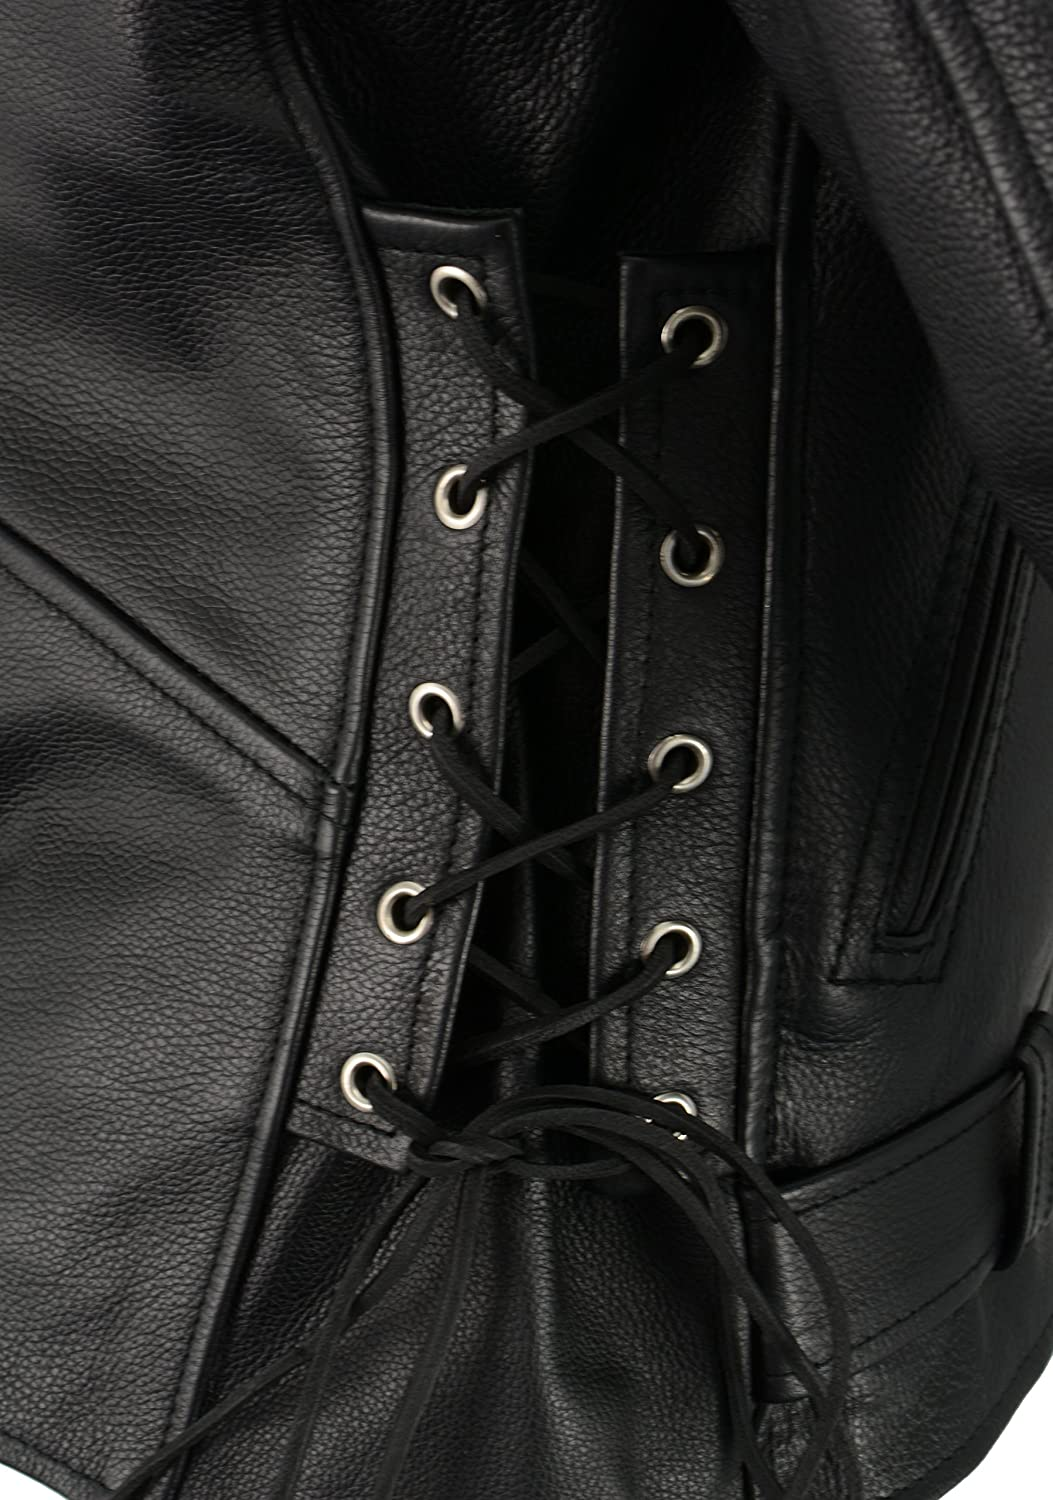 SH1011-XL-BLACK MILWAUKEE LEATHER Men/'s Classic Side Lace Police  Style Motorcycle Jacket